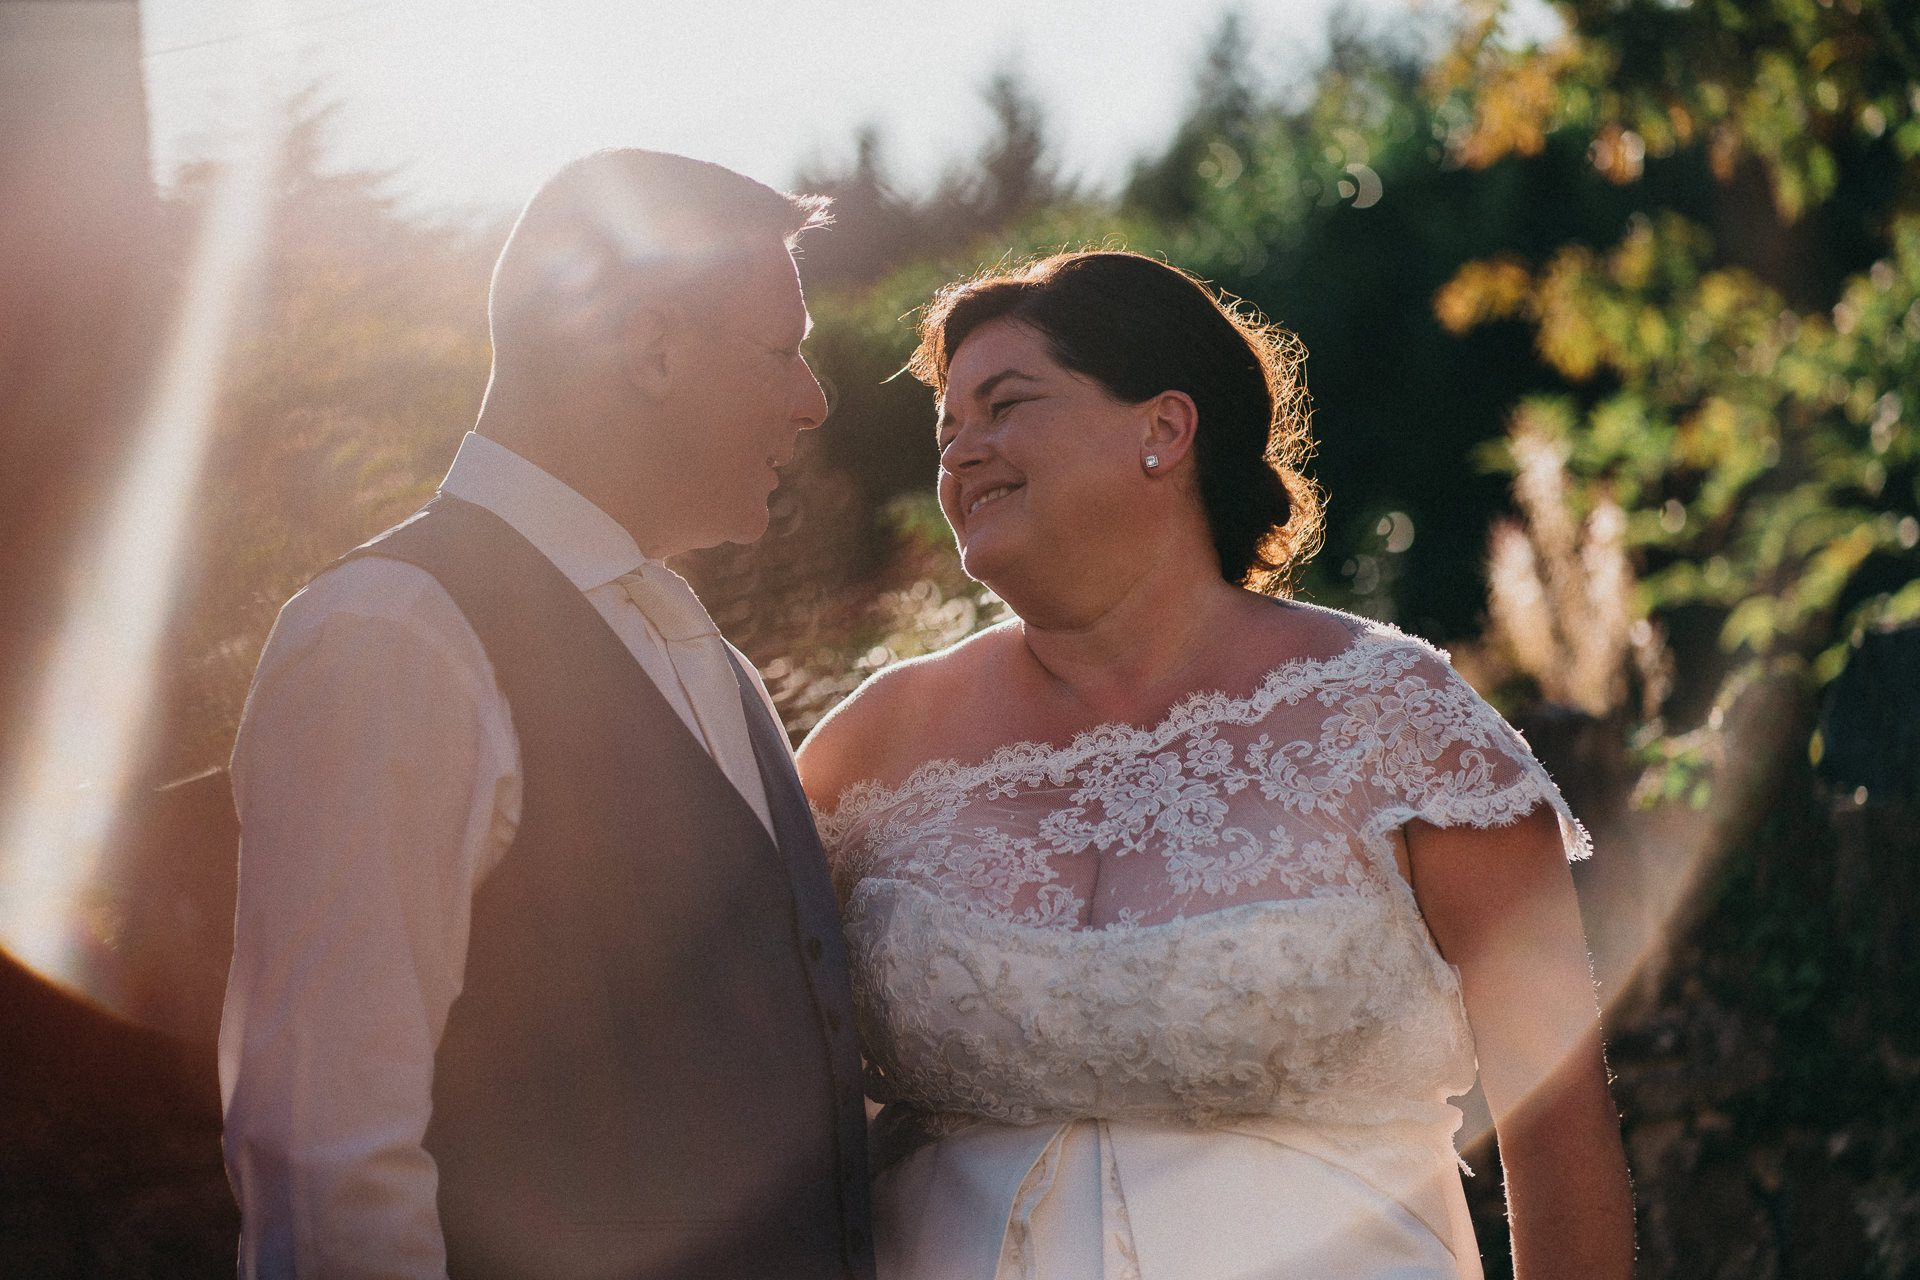 0114-DEVON-SOMERSET-WEDDING-PHOTOGRAPHER-0577-BEST-OF-2019-LOUISE-MAY-DEVON-SOMERSET-WEDDING-PHOTOGRAPHY-20190914-17-48-35-20190914174835LM205910